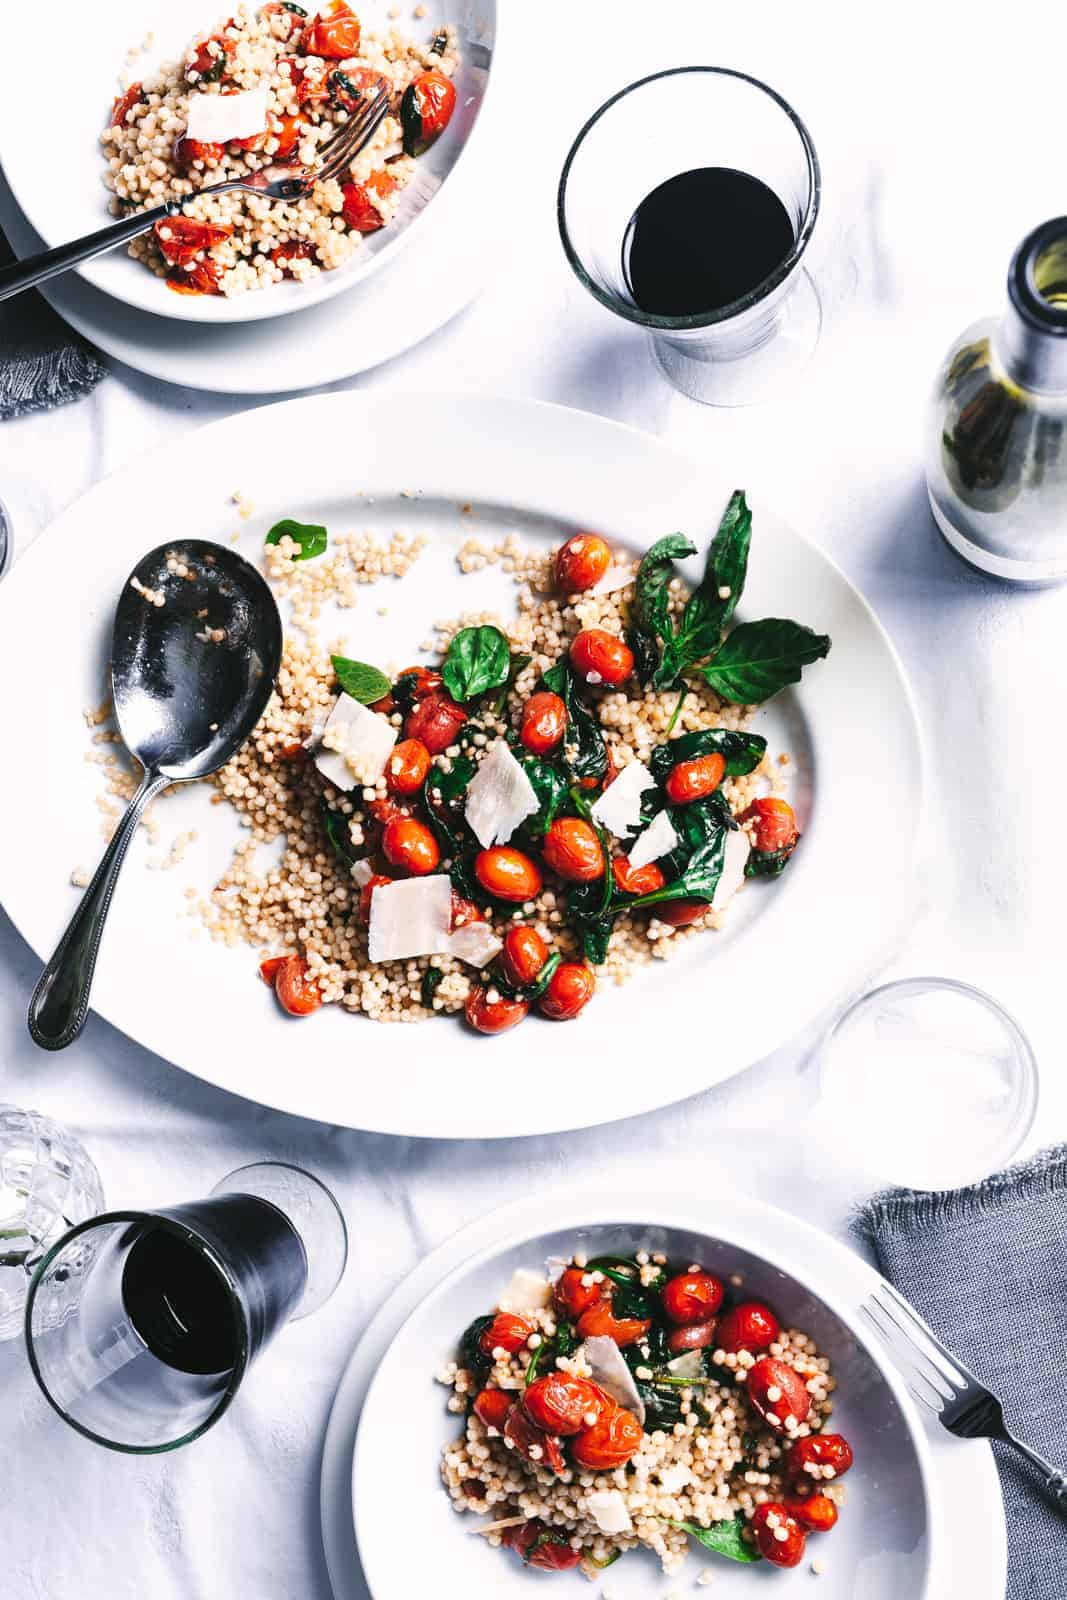 three plates of couscous with tomatoes and basil with two glasses of red wine all on a white tablecloth